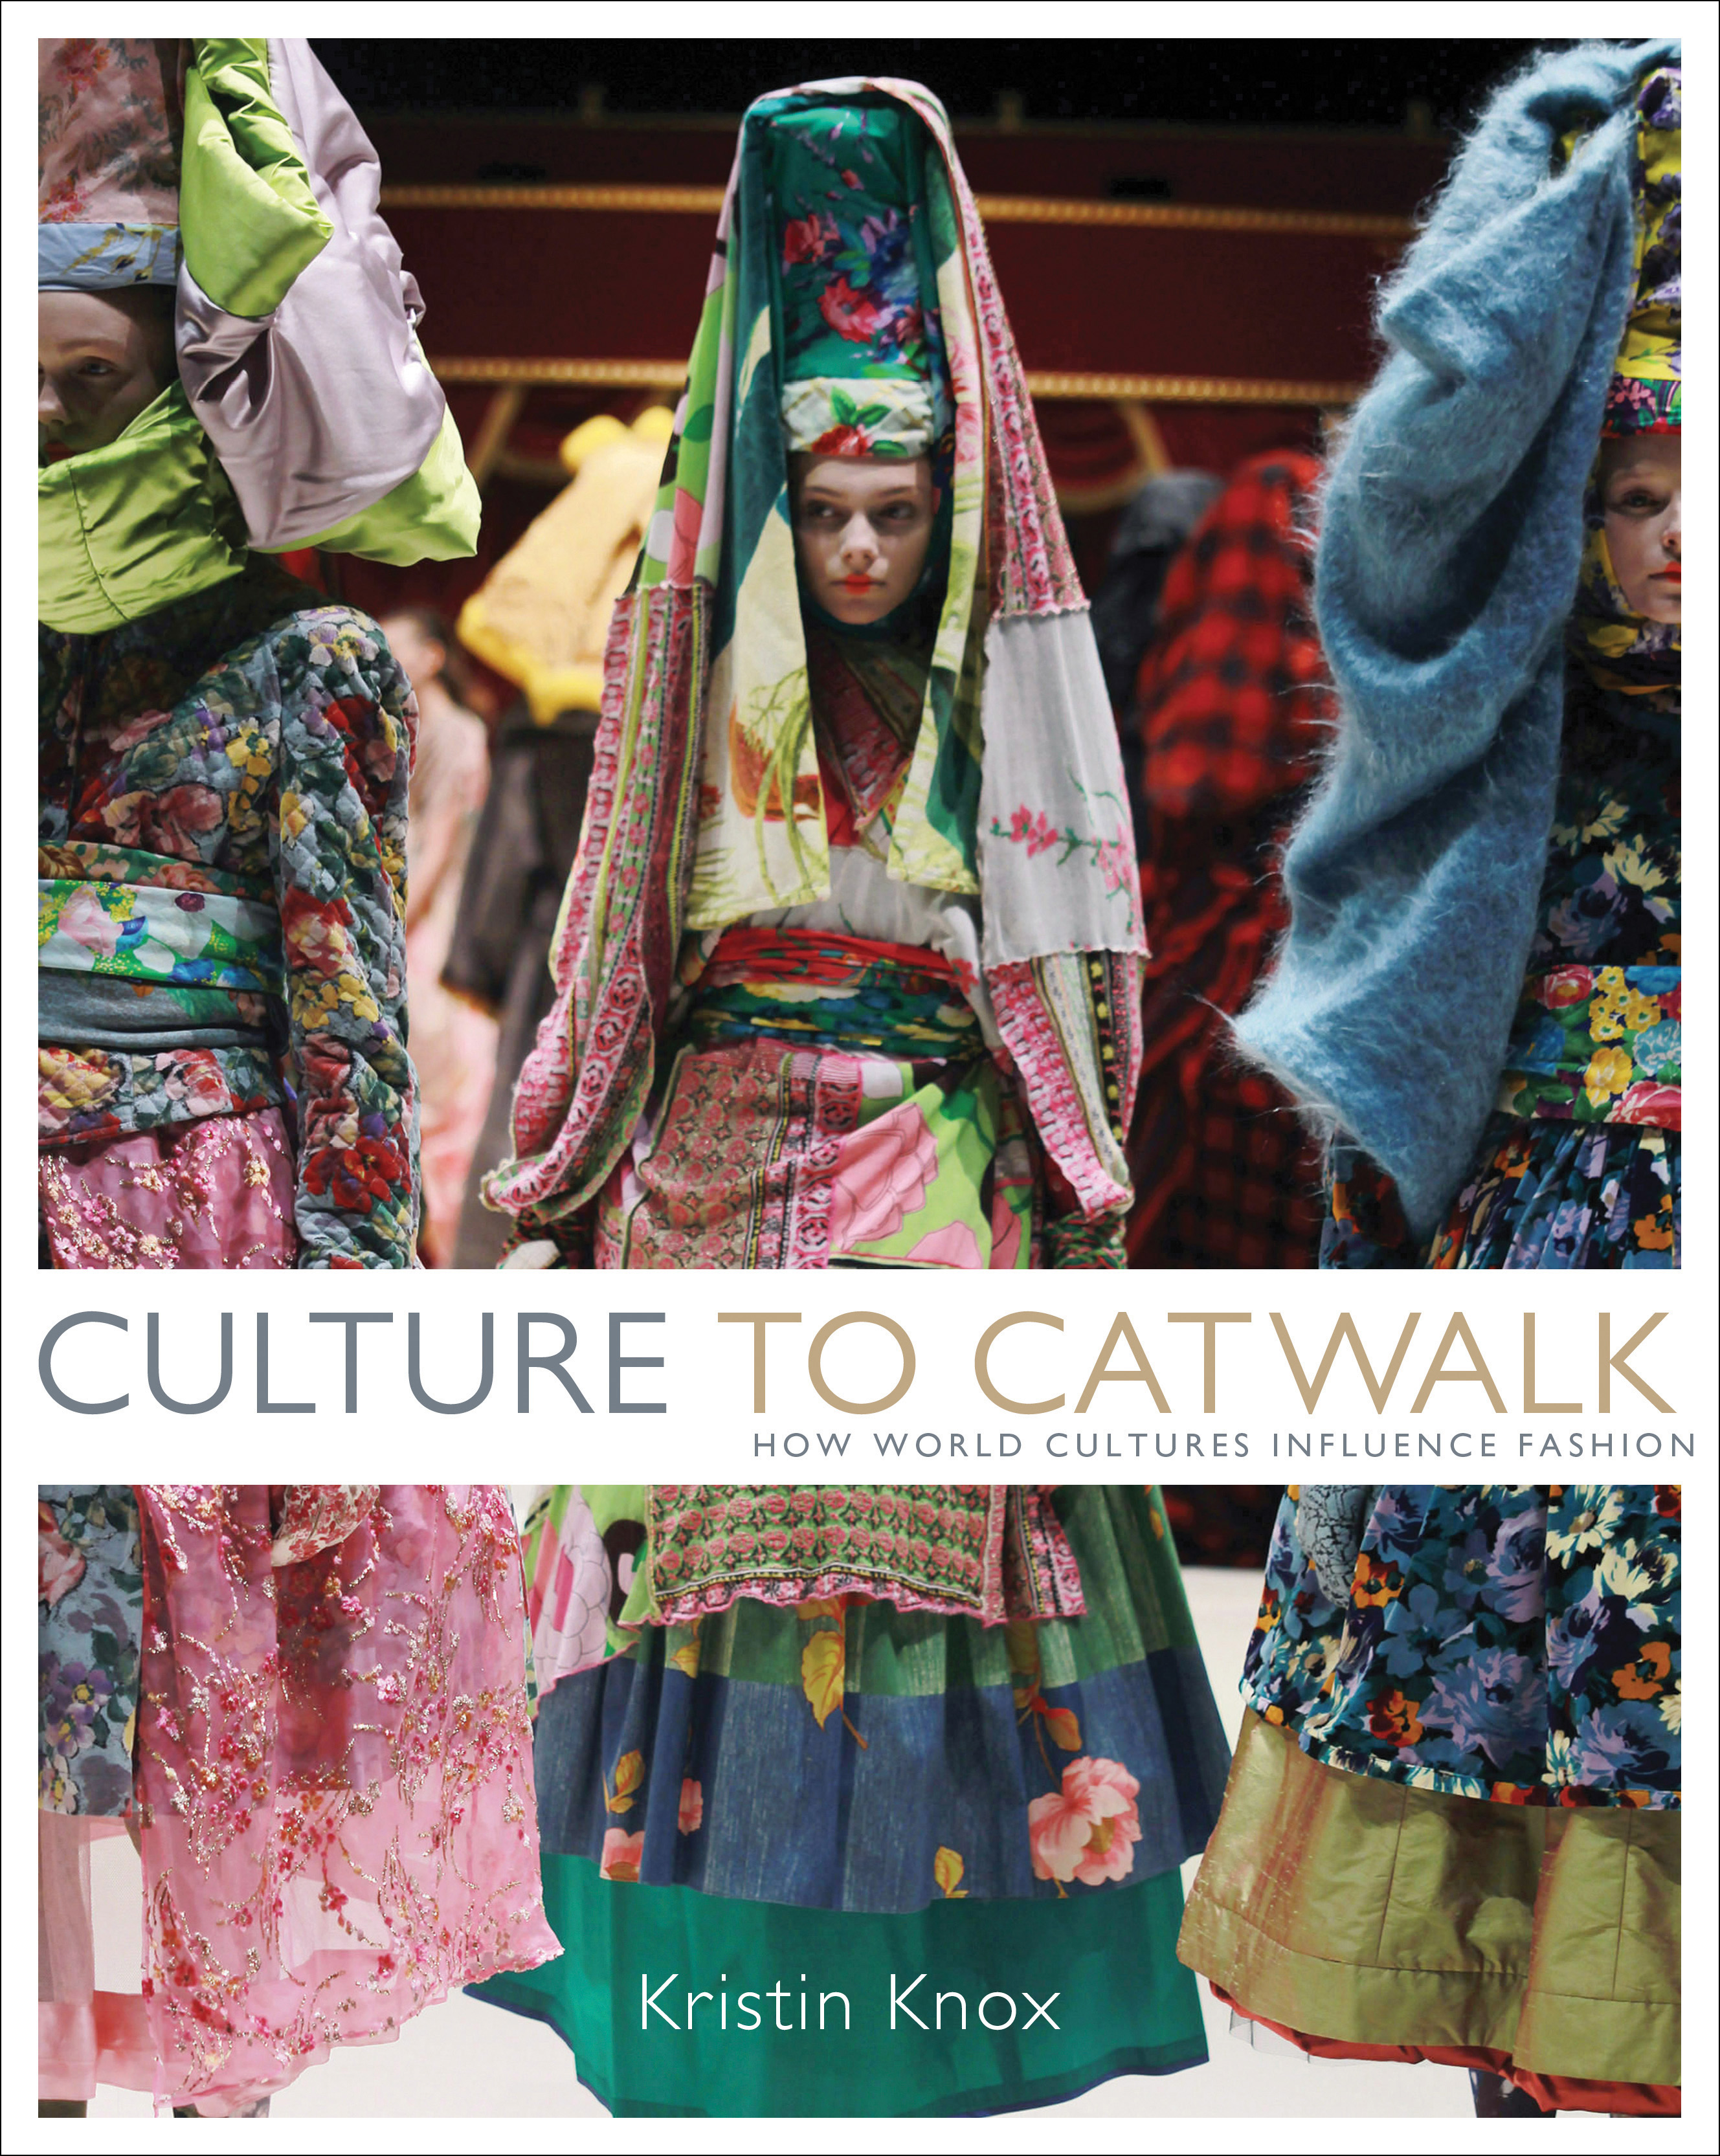 Culture to Catwalk by Kristin Knox, ISBN: 9781408130711